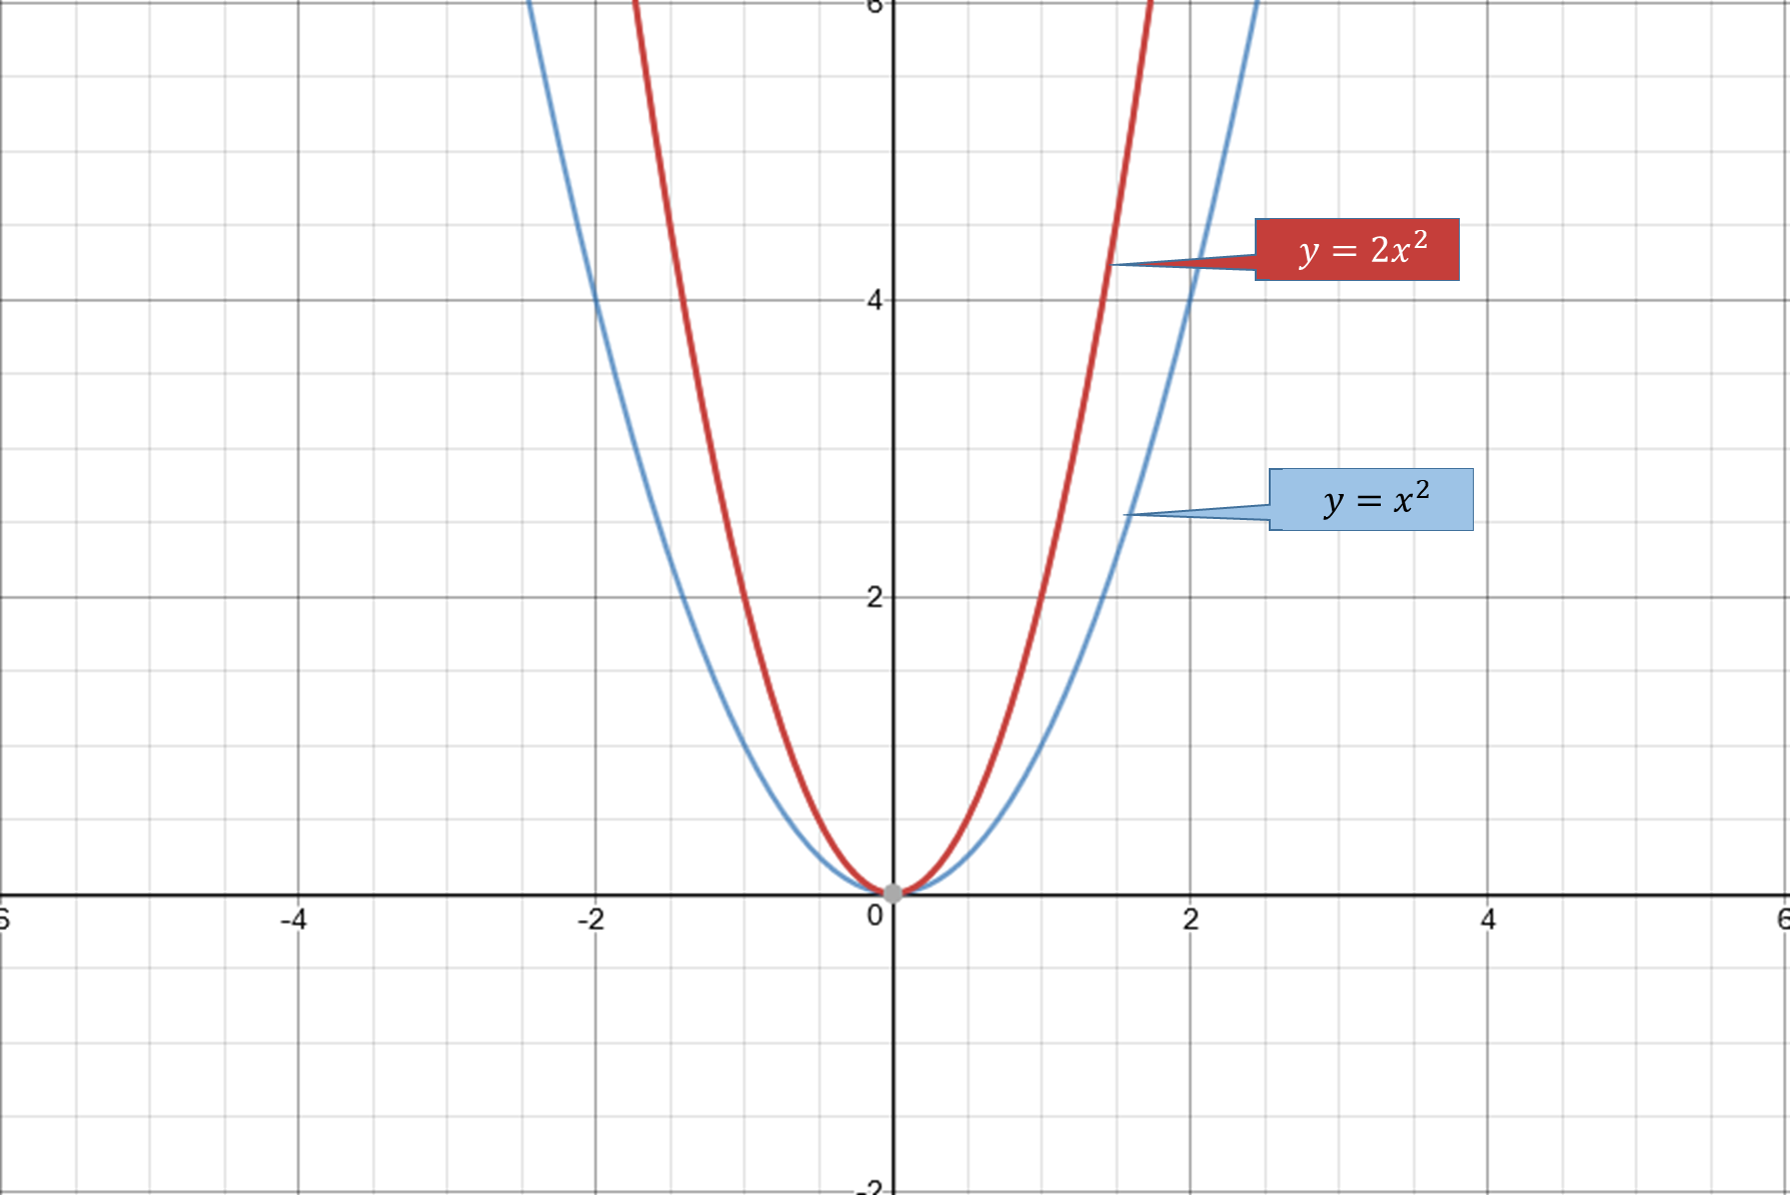 Is the parabola described by y=2x^2 wider or narrower than ...